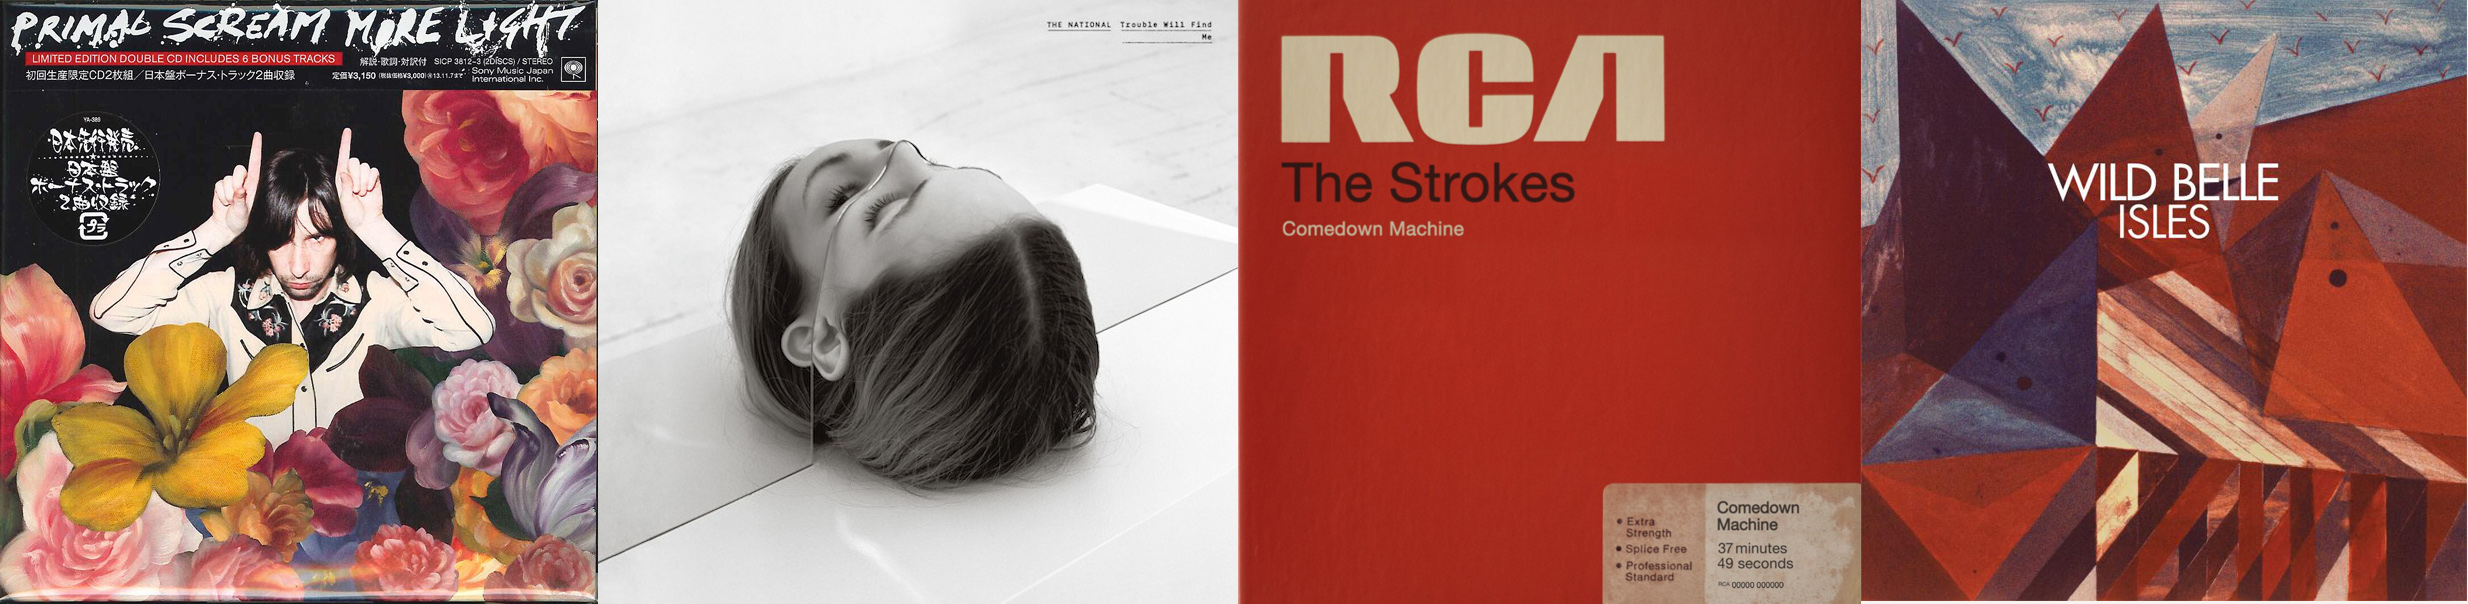 Primal Scream, the National, the Strokes, Wild Belle